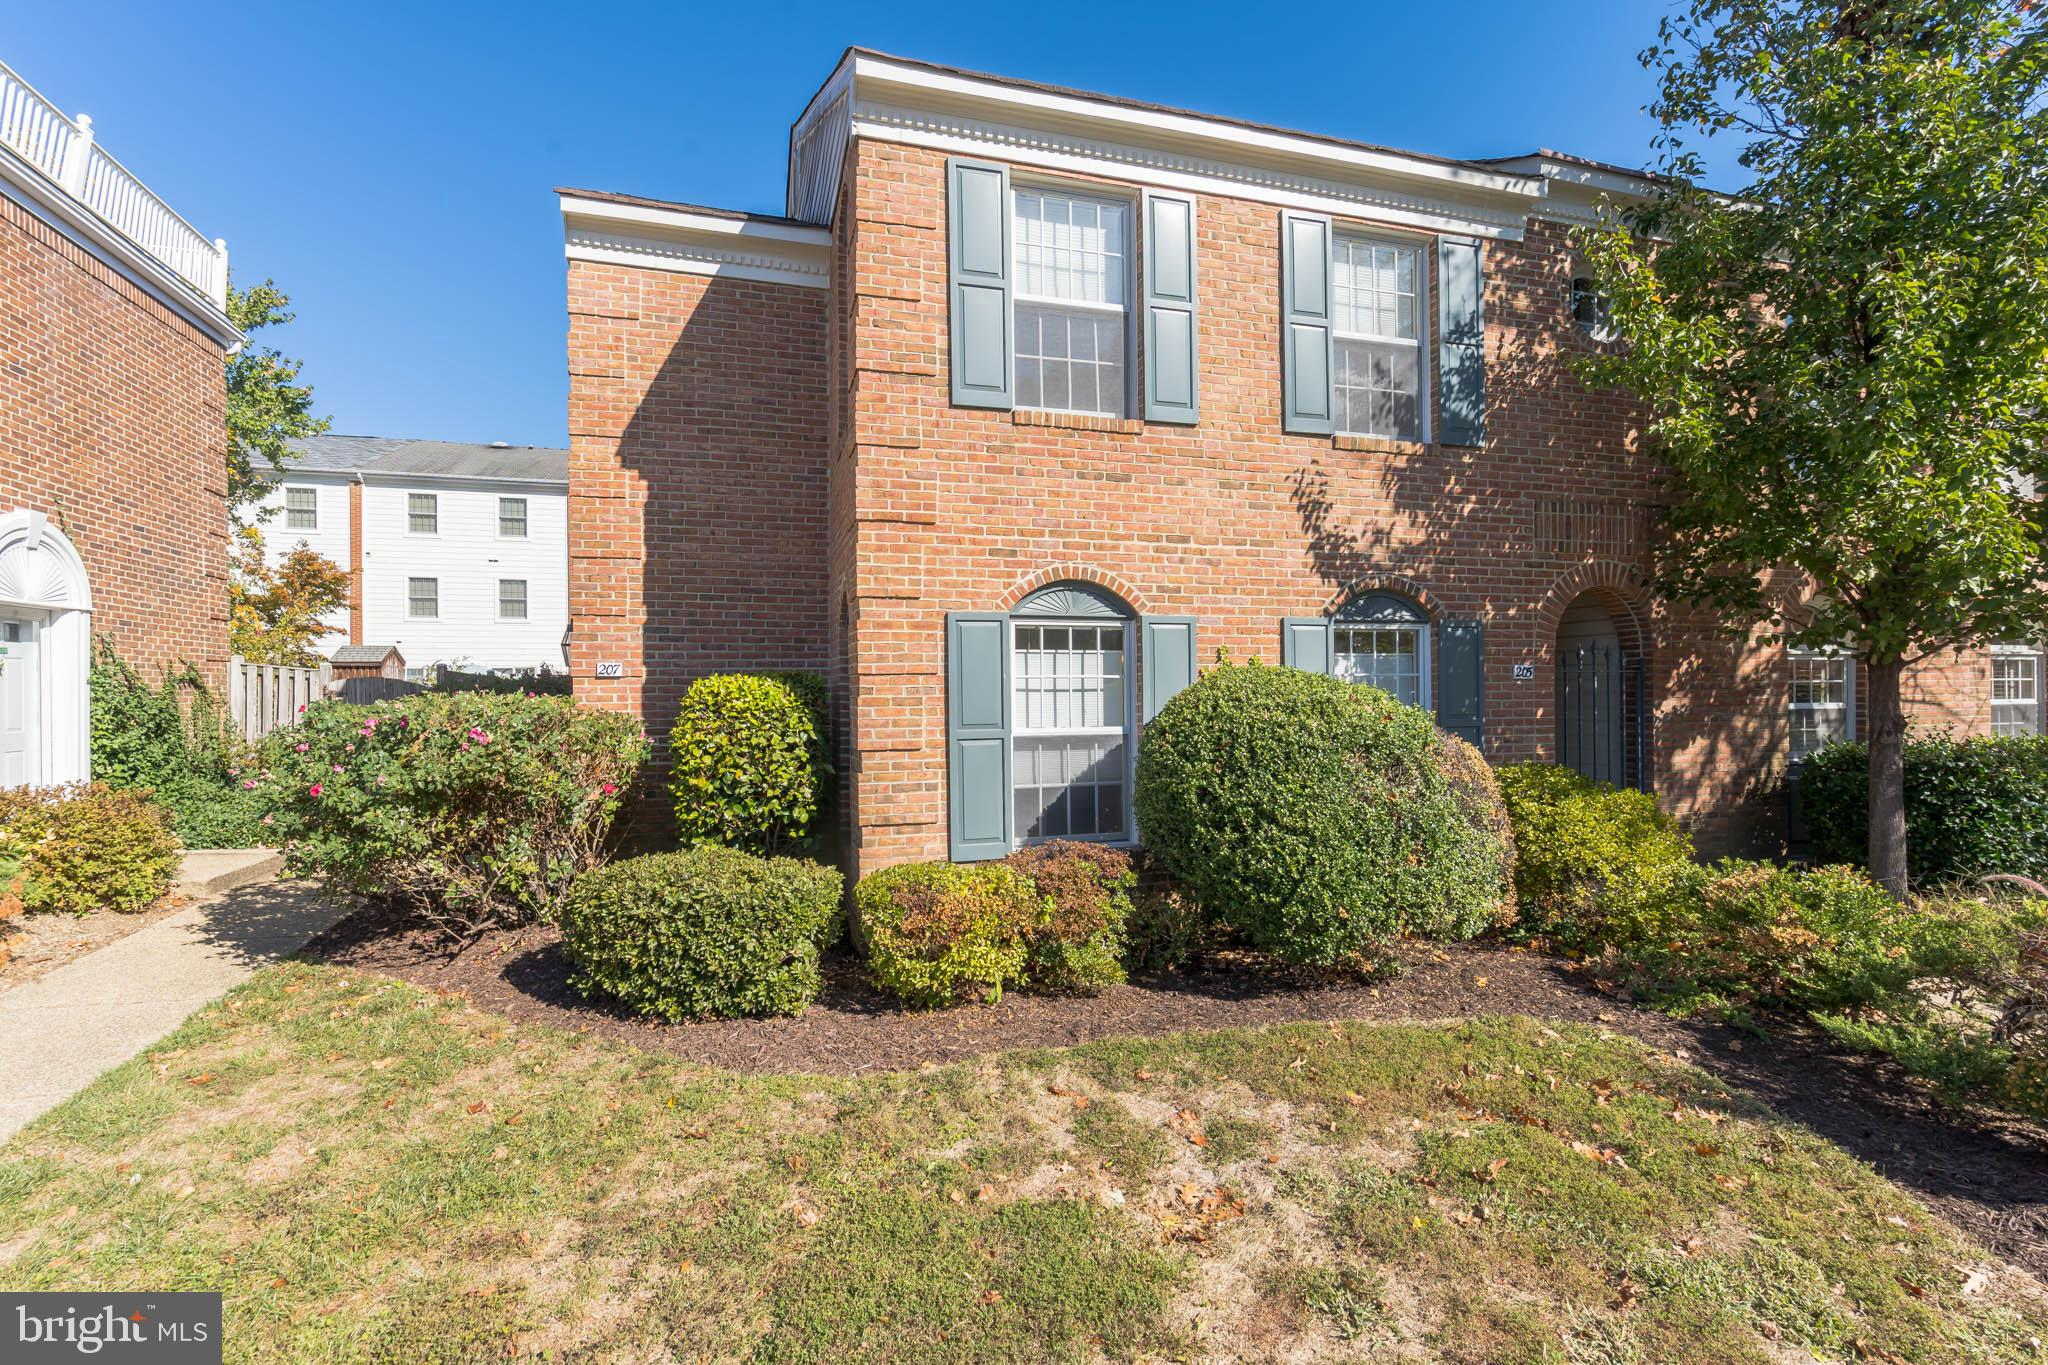 Fantastic End-Unit Townhome located in highly sought after Hickory Ridge Subdivision located in the